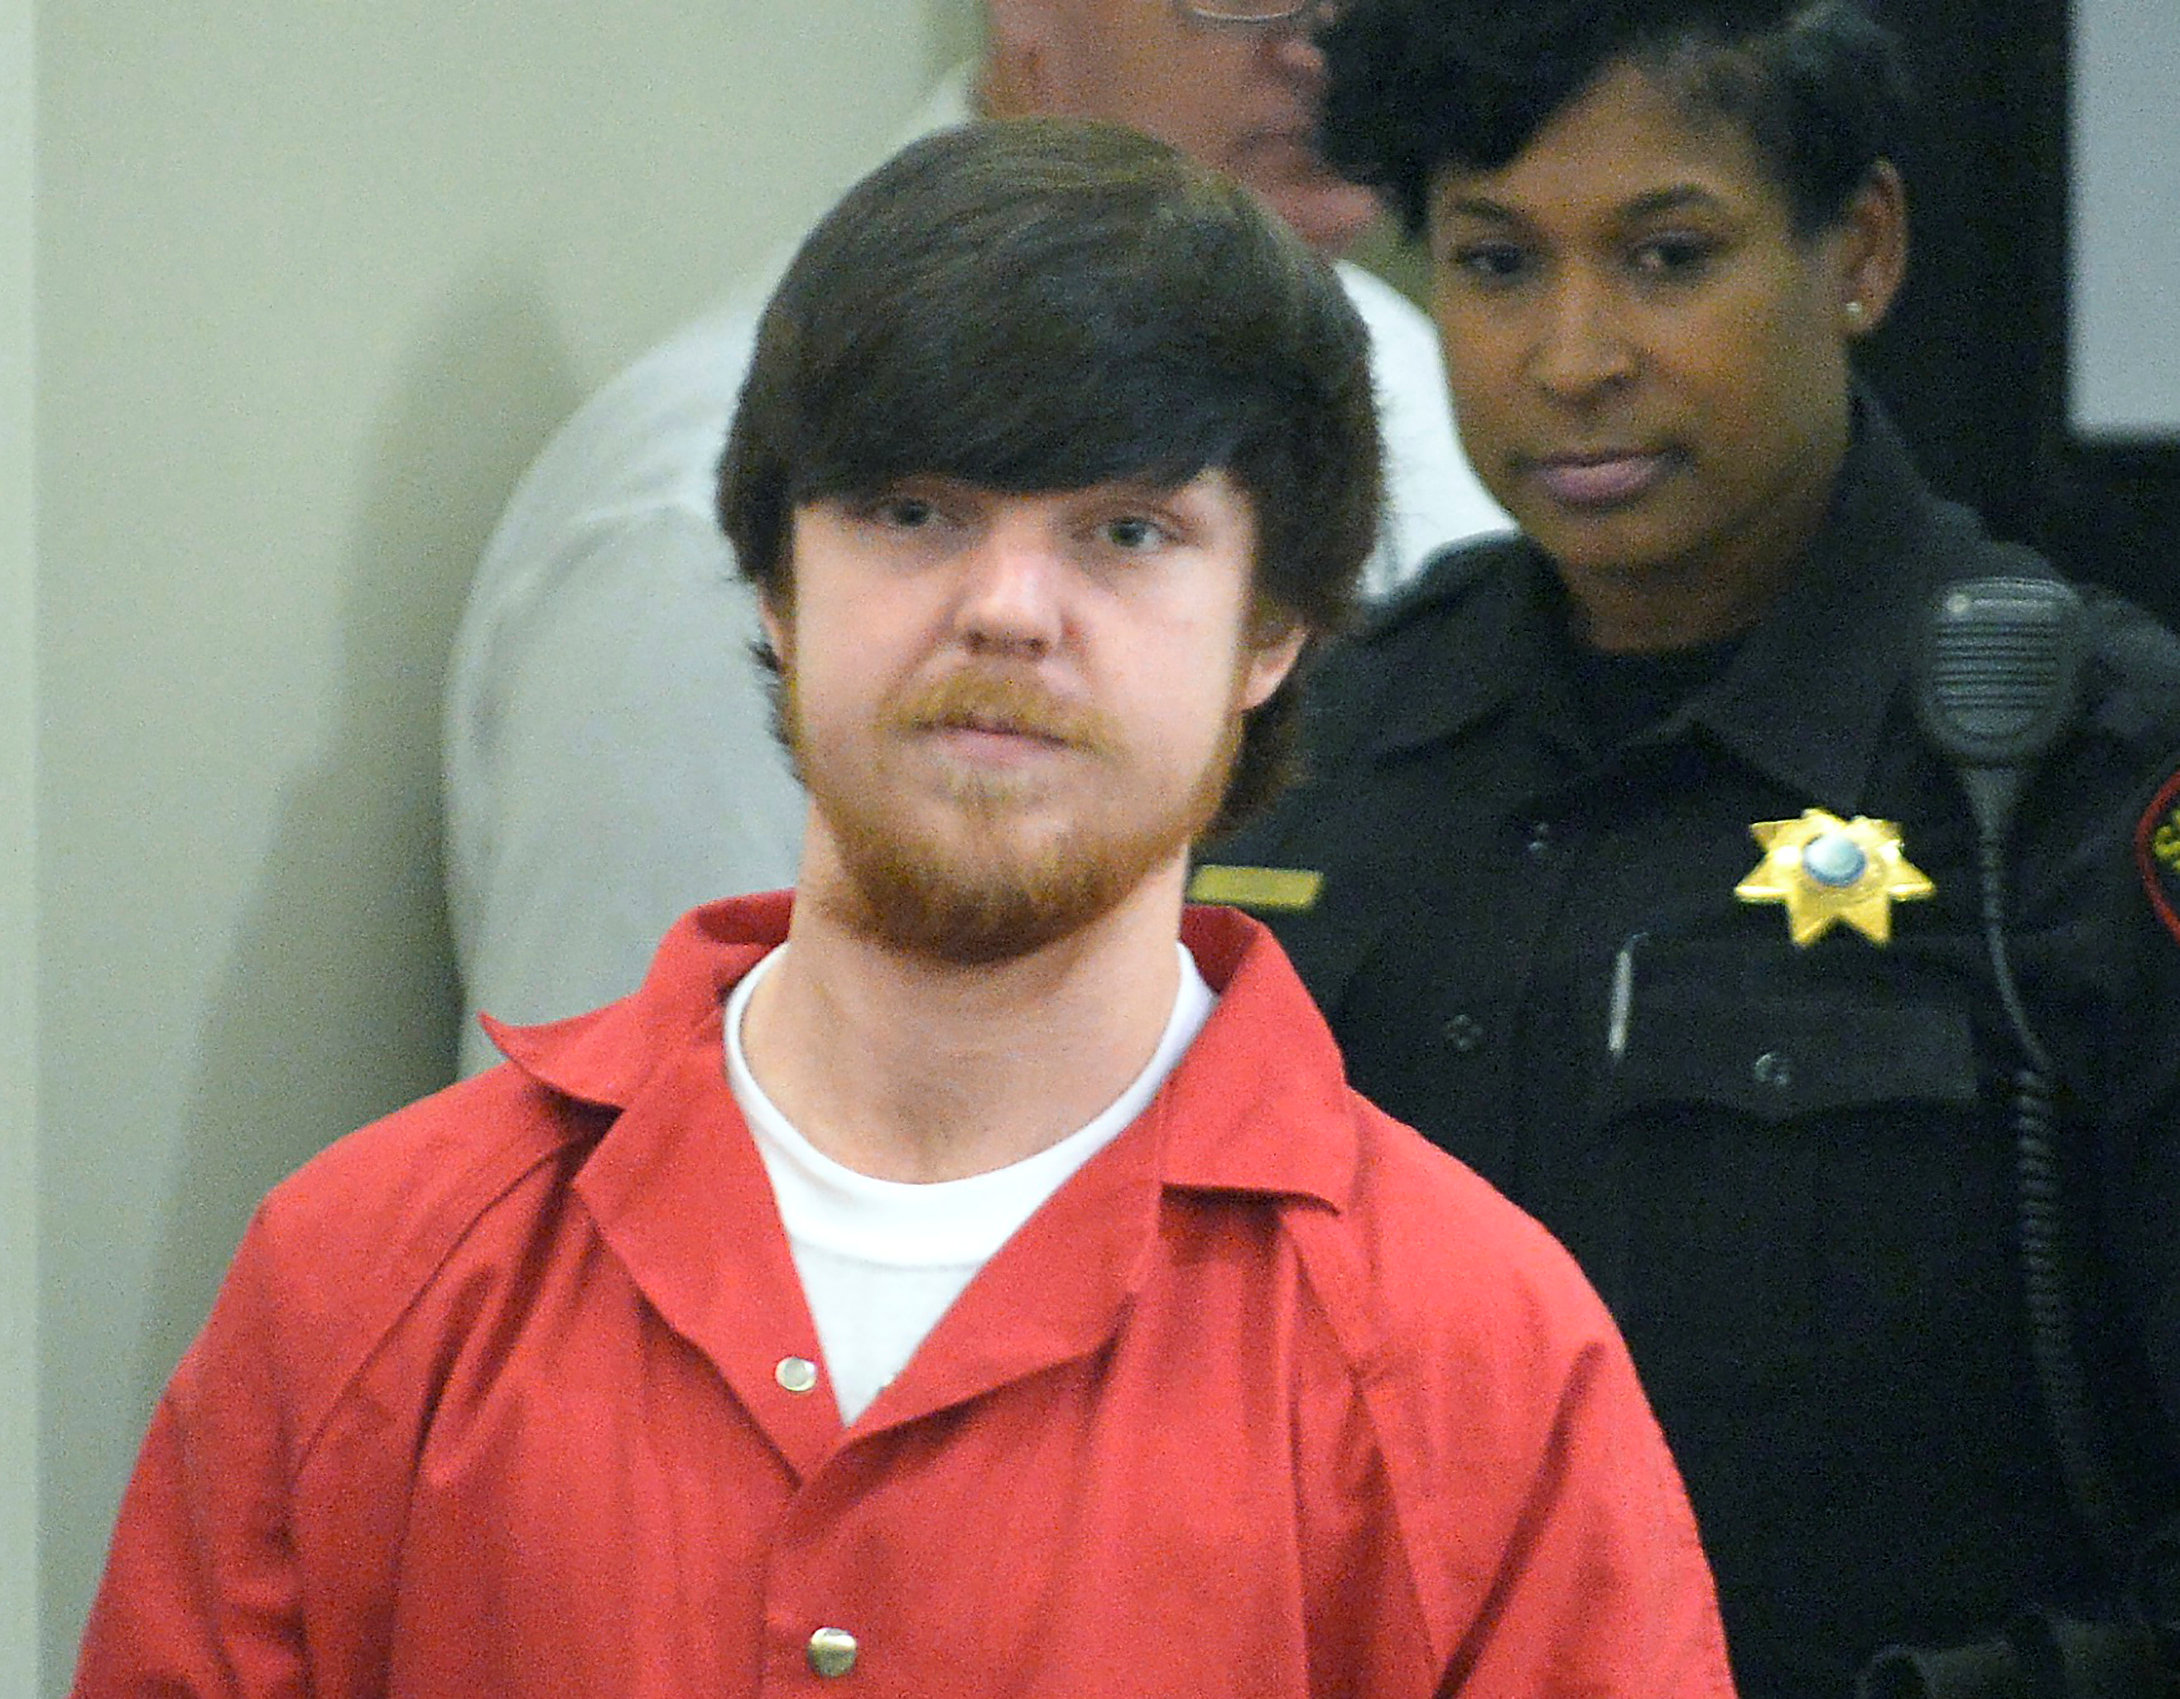 """FILE PHOTO: Ethan Couch, the so-called """"affluenza"""" teen, is brought into court for his adult court hearing at Tim Curry Justice Center in Fort Worth, Texas April 13, 2016. Fort Worth Star-Telegram/Max Faulkner/Pool via REUTERS"""